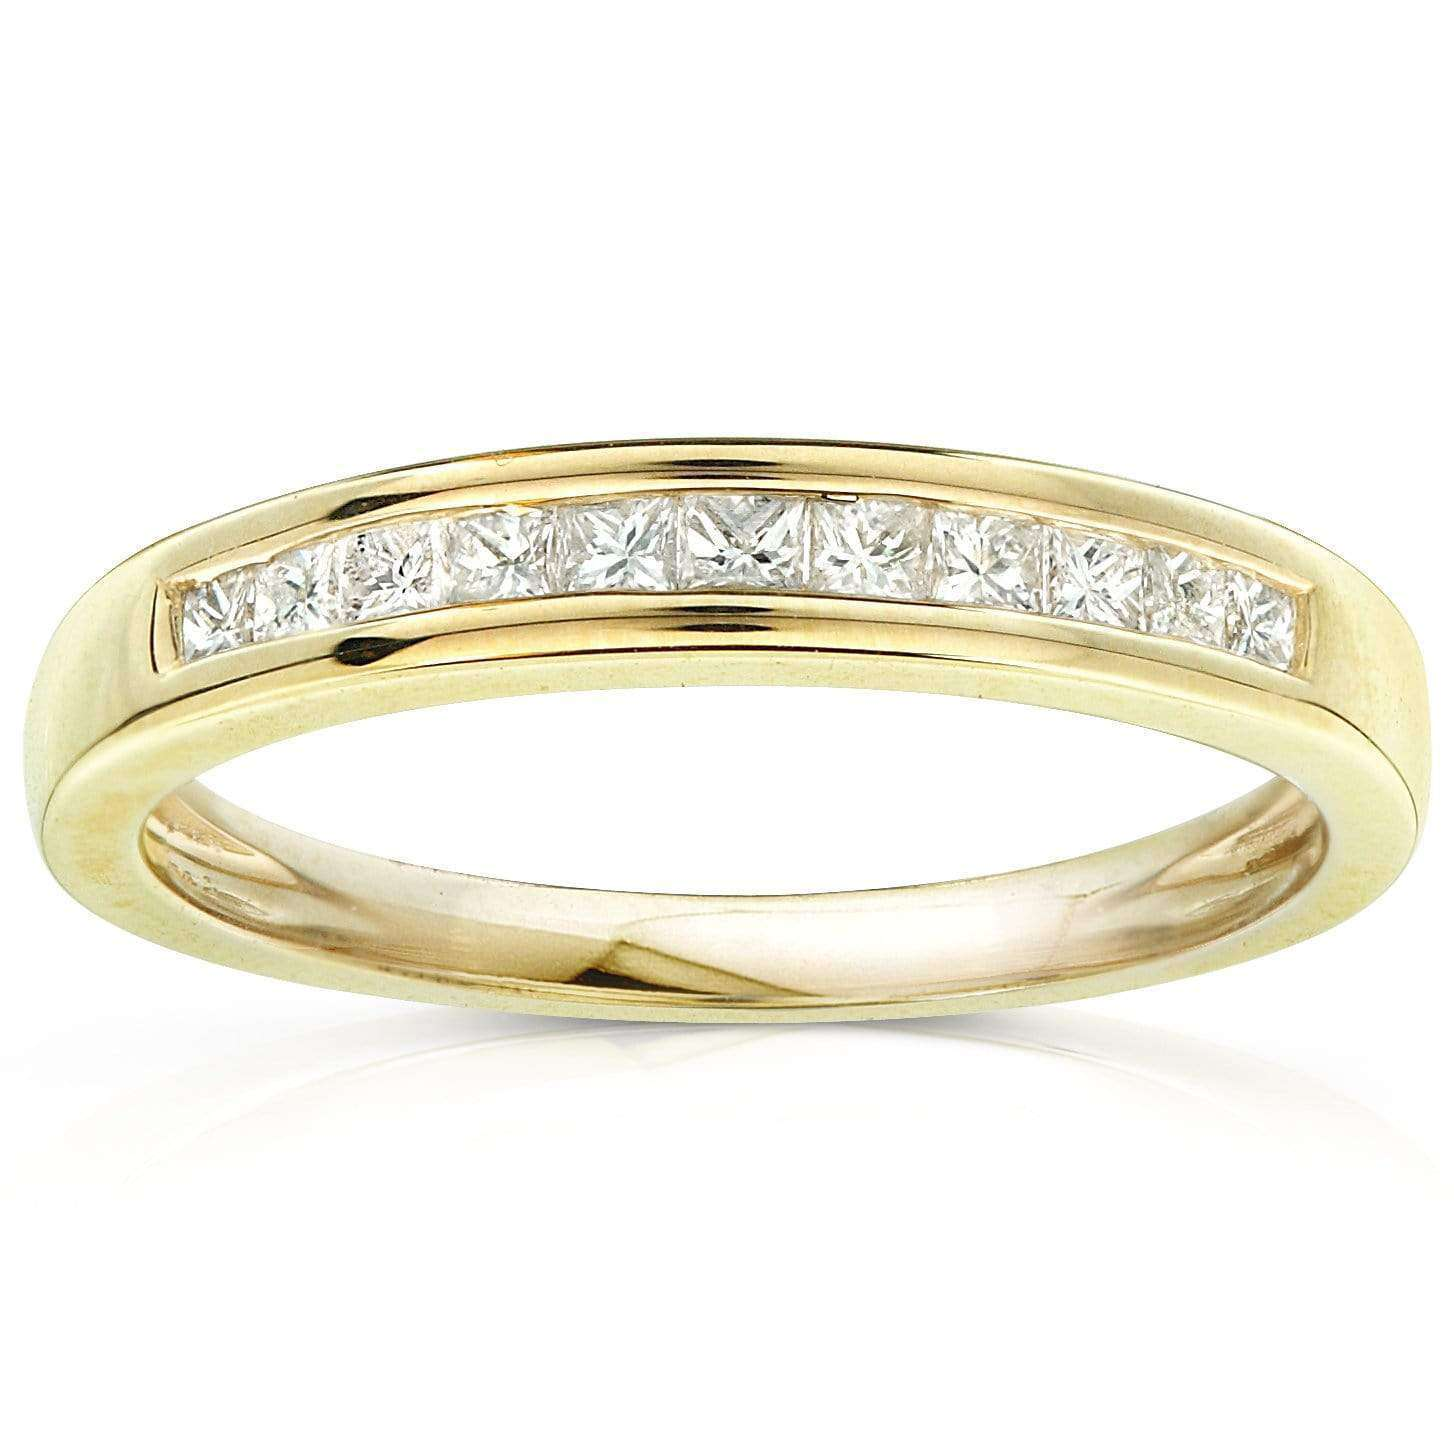 Best Diamond Band 1/4 carat (ctw) in 14kt Yellow Gold - 10.5